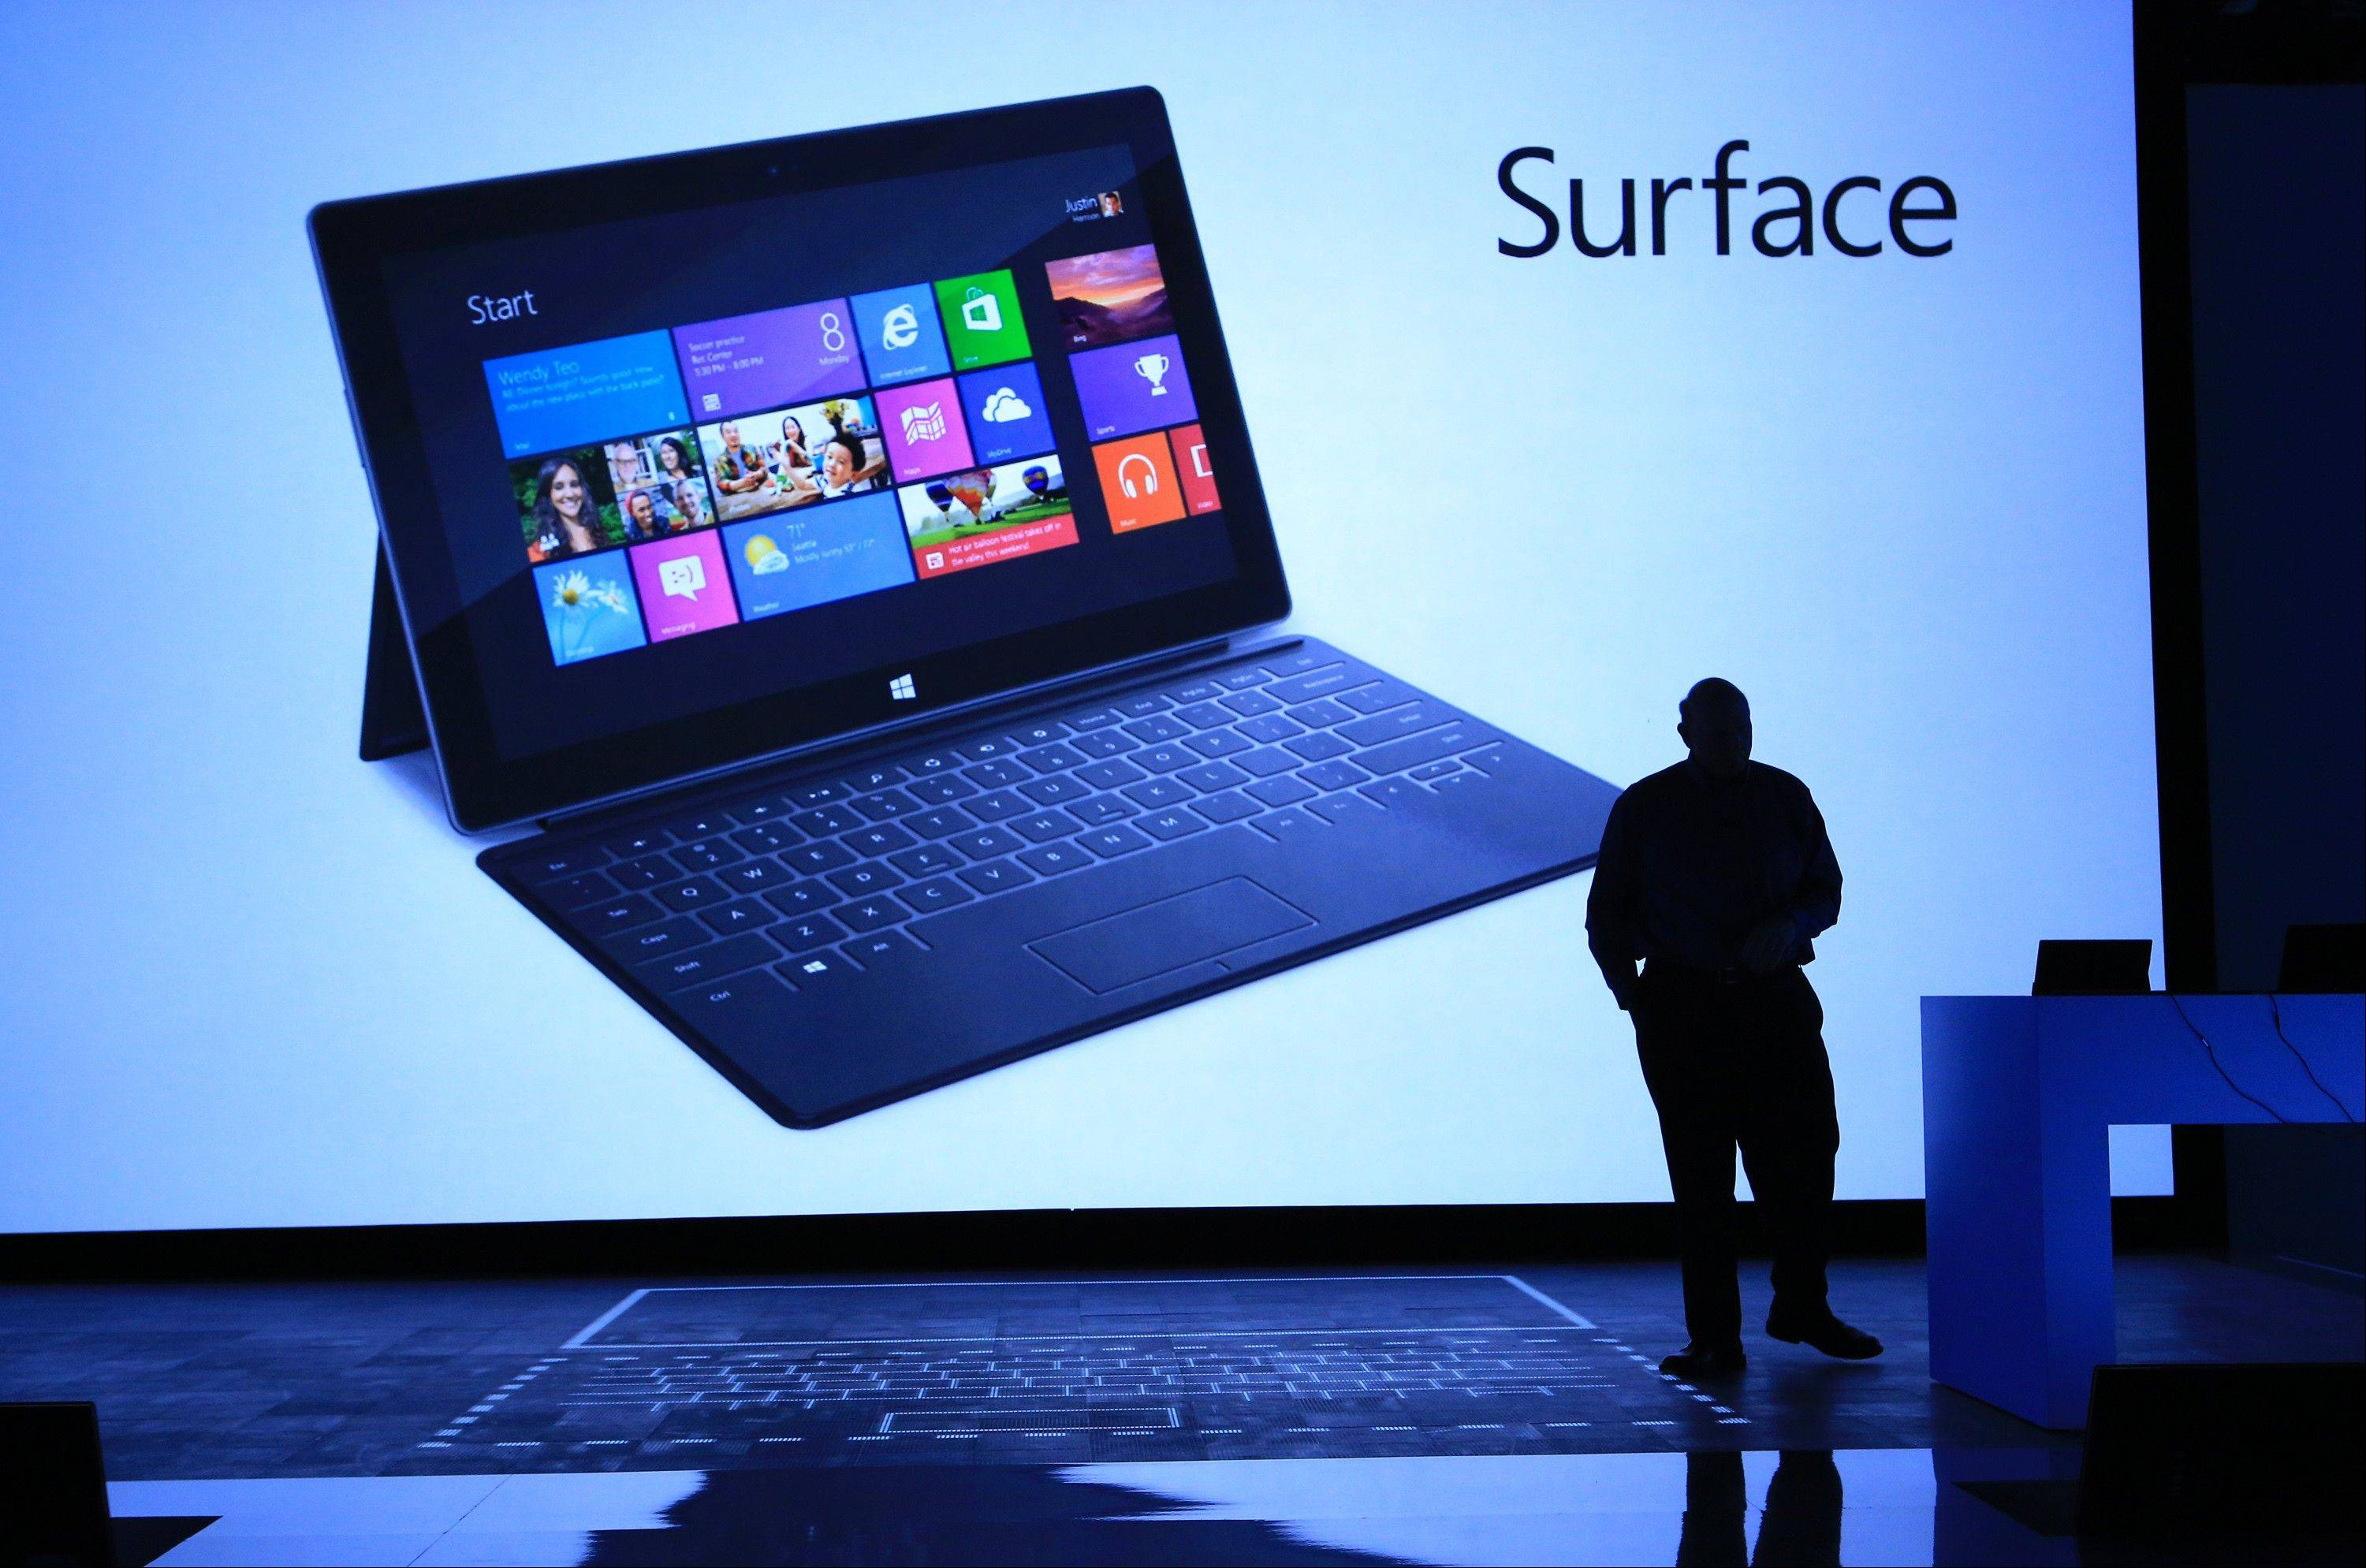 With the unveiling of the Surface tablet, Microsoft is heading into unusual territory: competing with its partners, the very same companies that make Windows PCs.